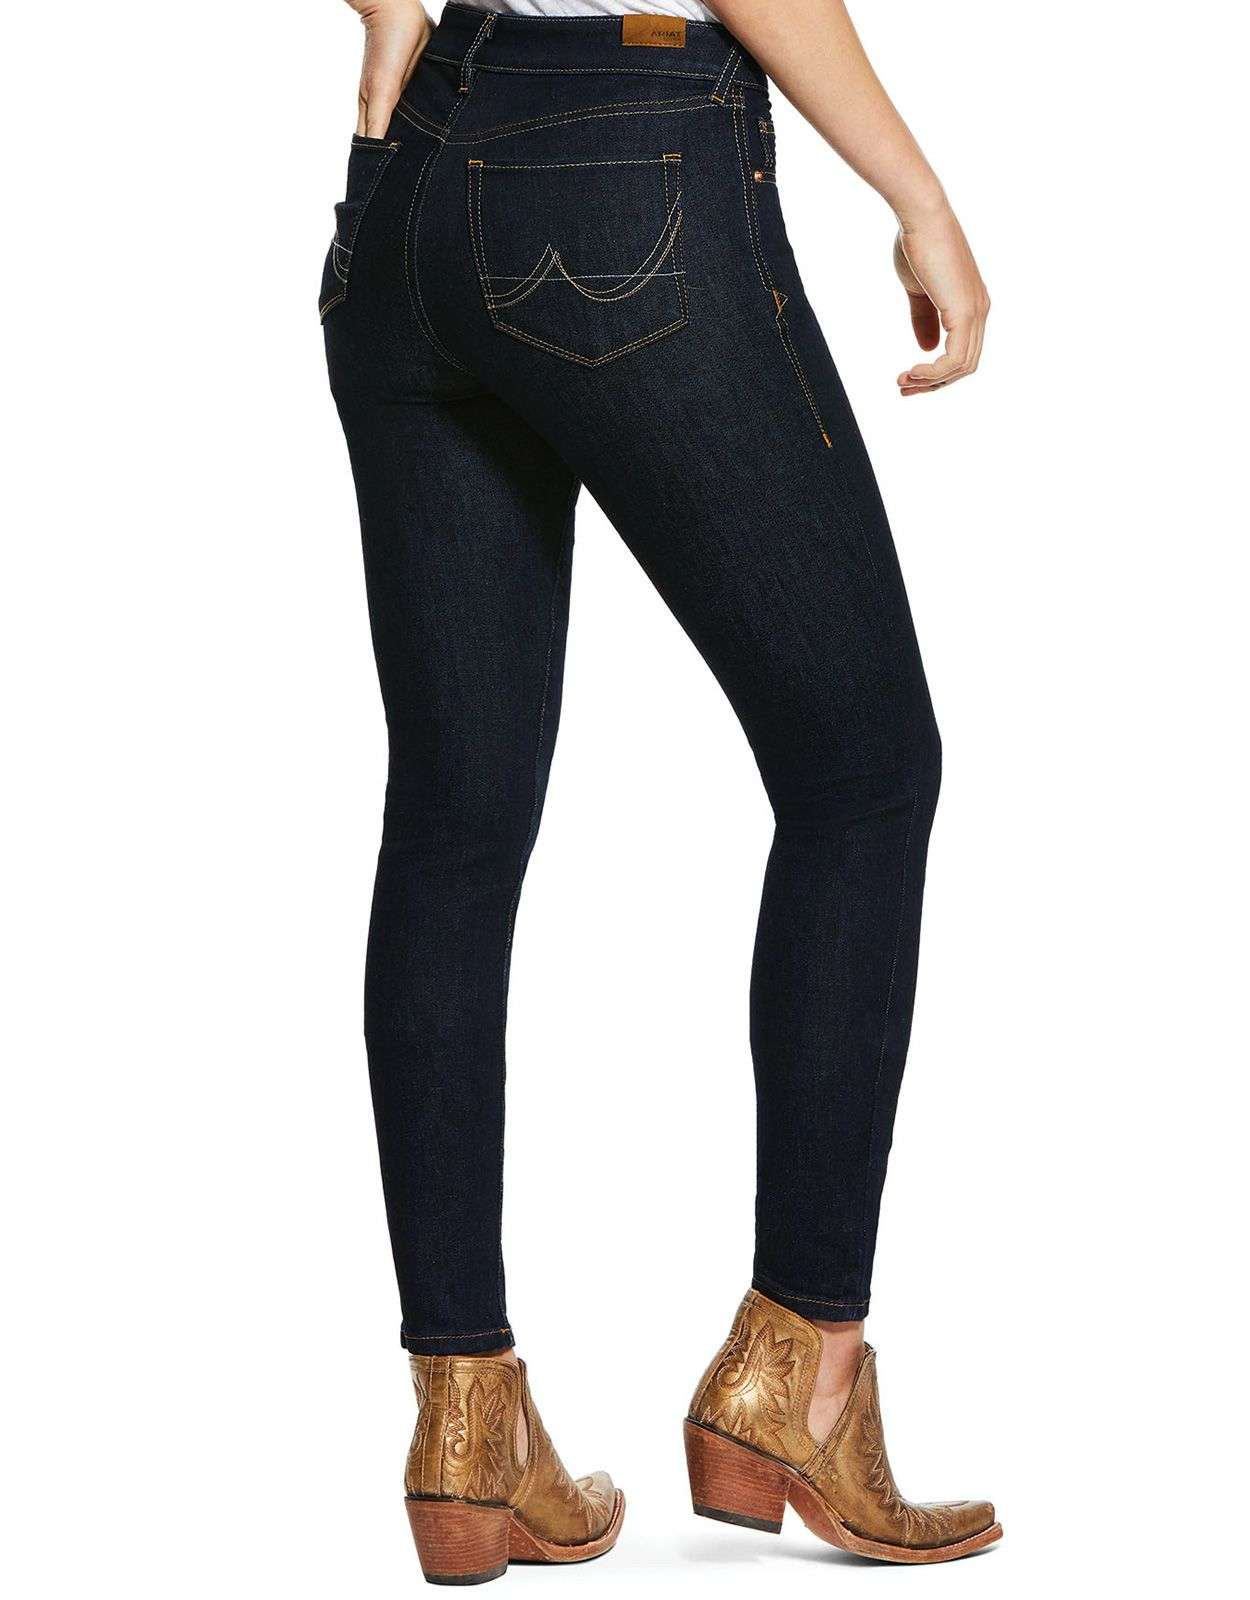 Ariat Women's Perfect Rise Ultra Stretch Mid Rise Skinny Jeans - Rinse